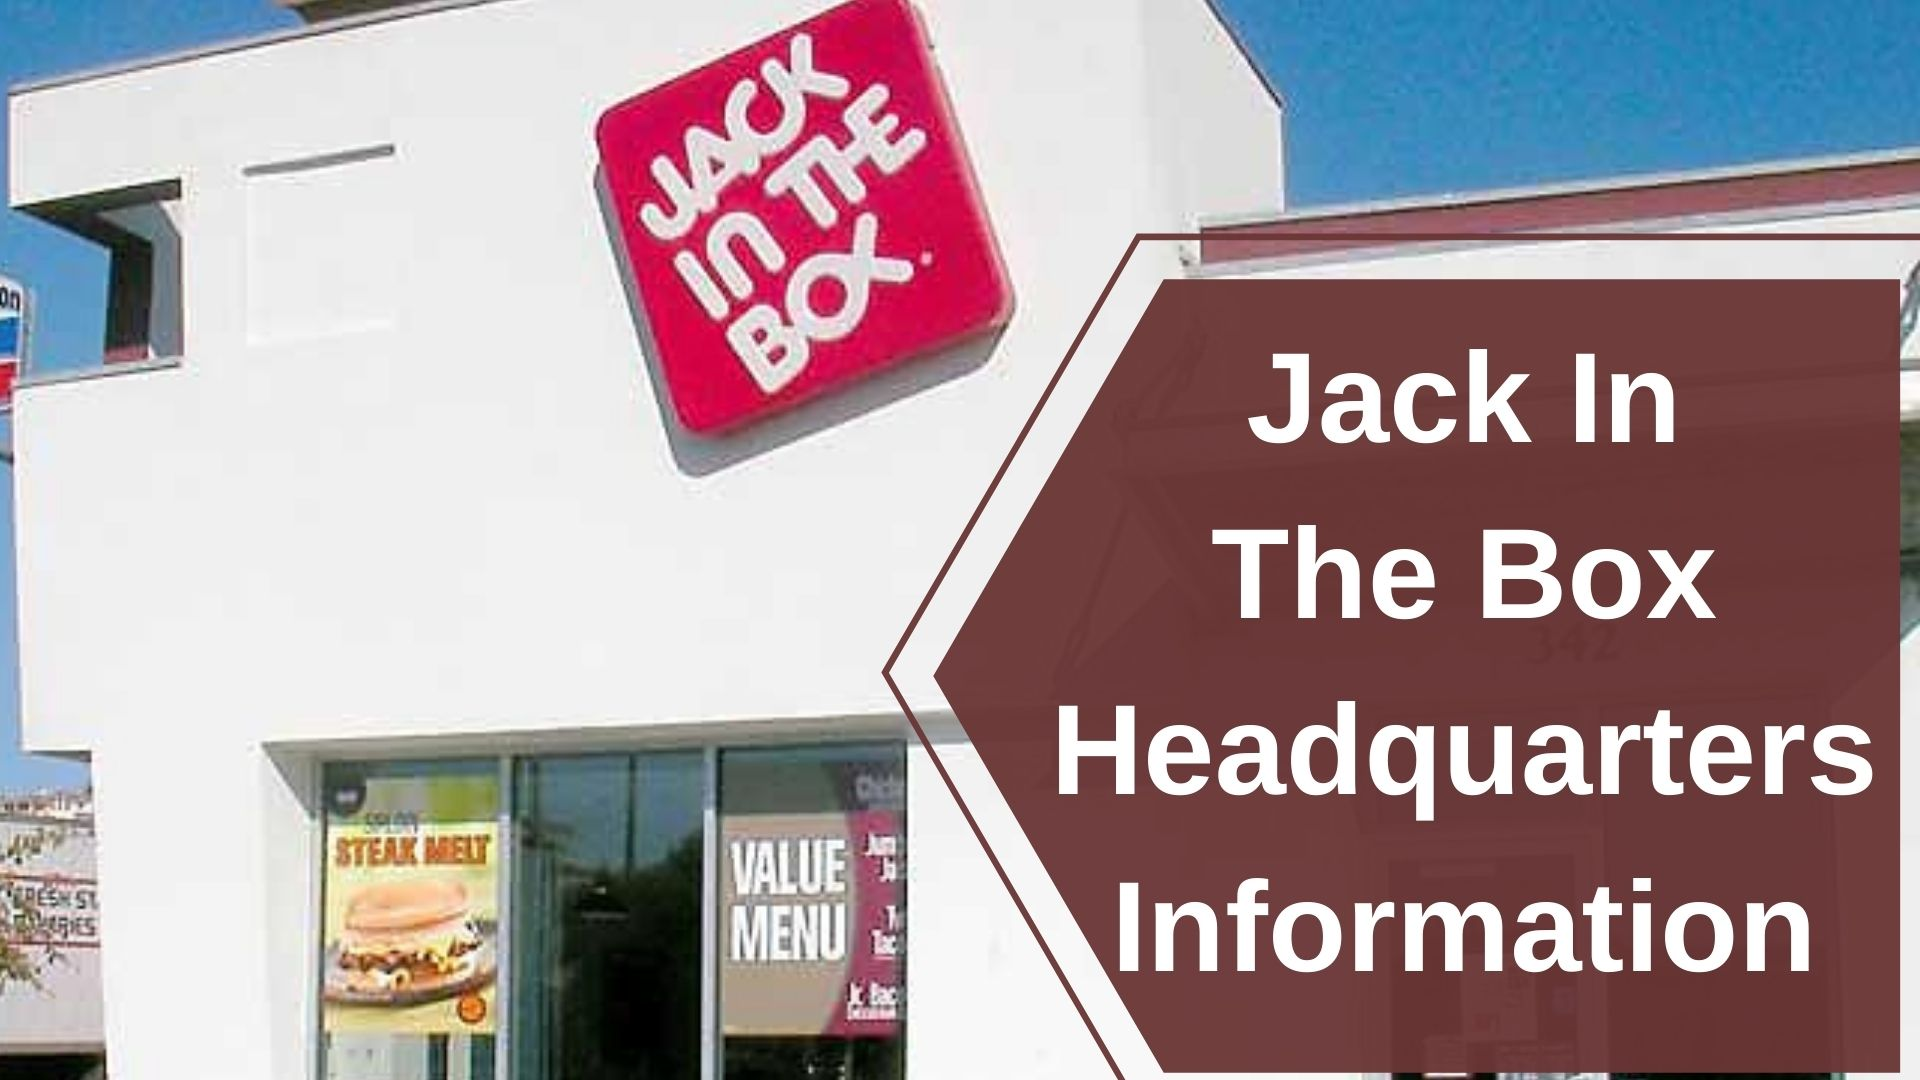 Jack In The Box Headquarters Information